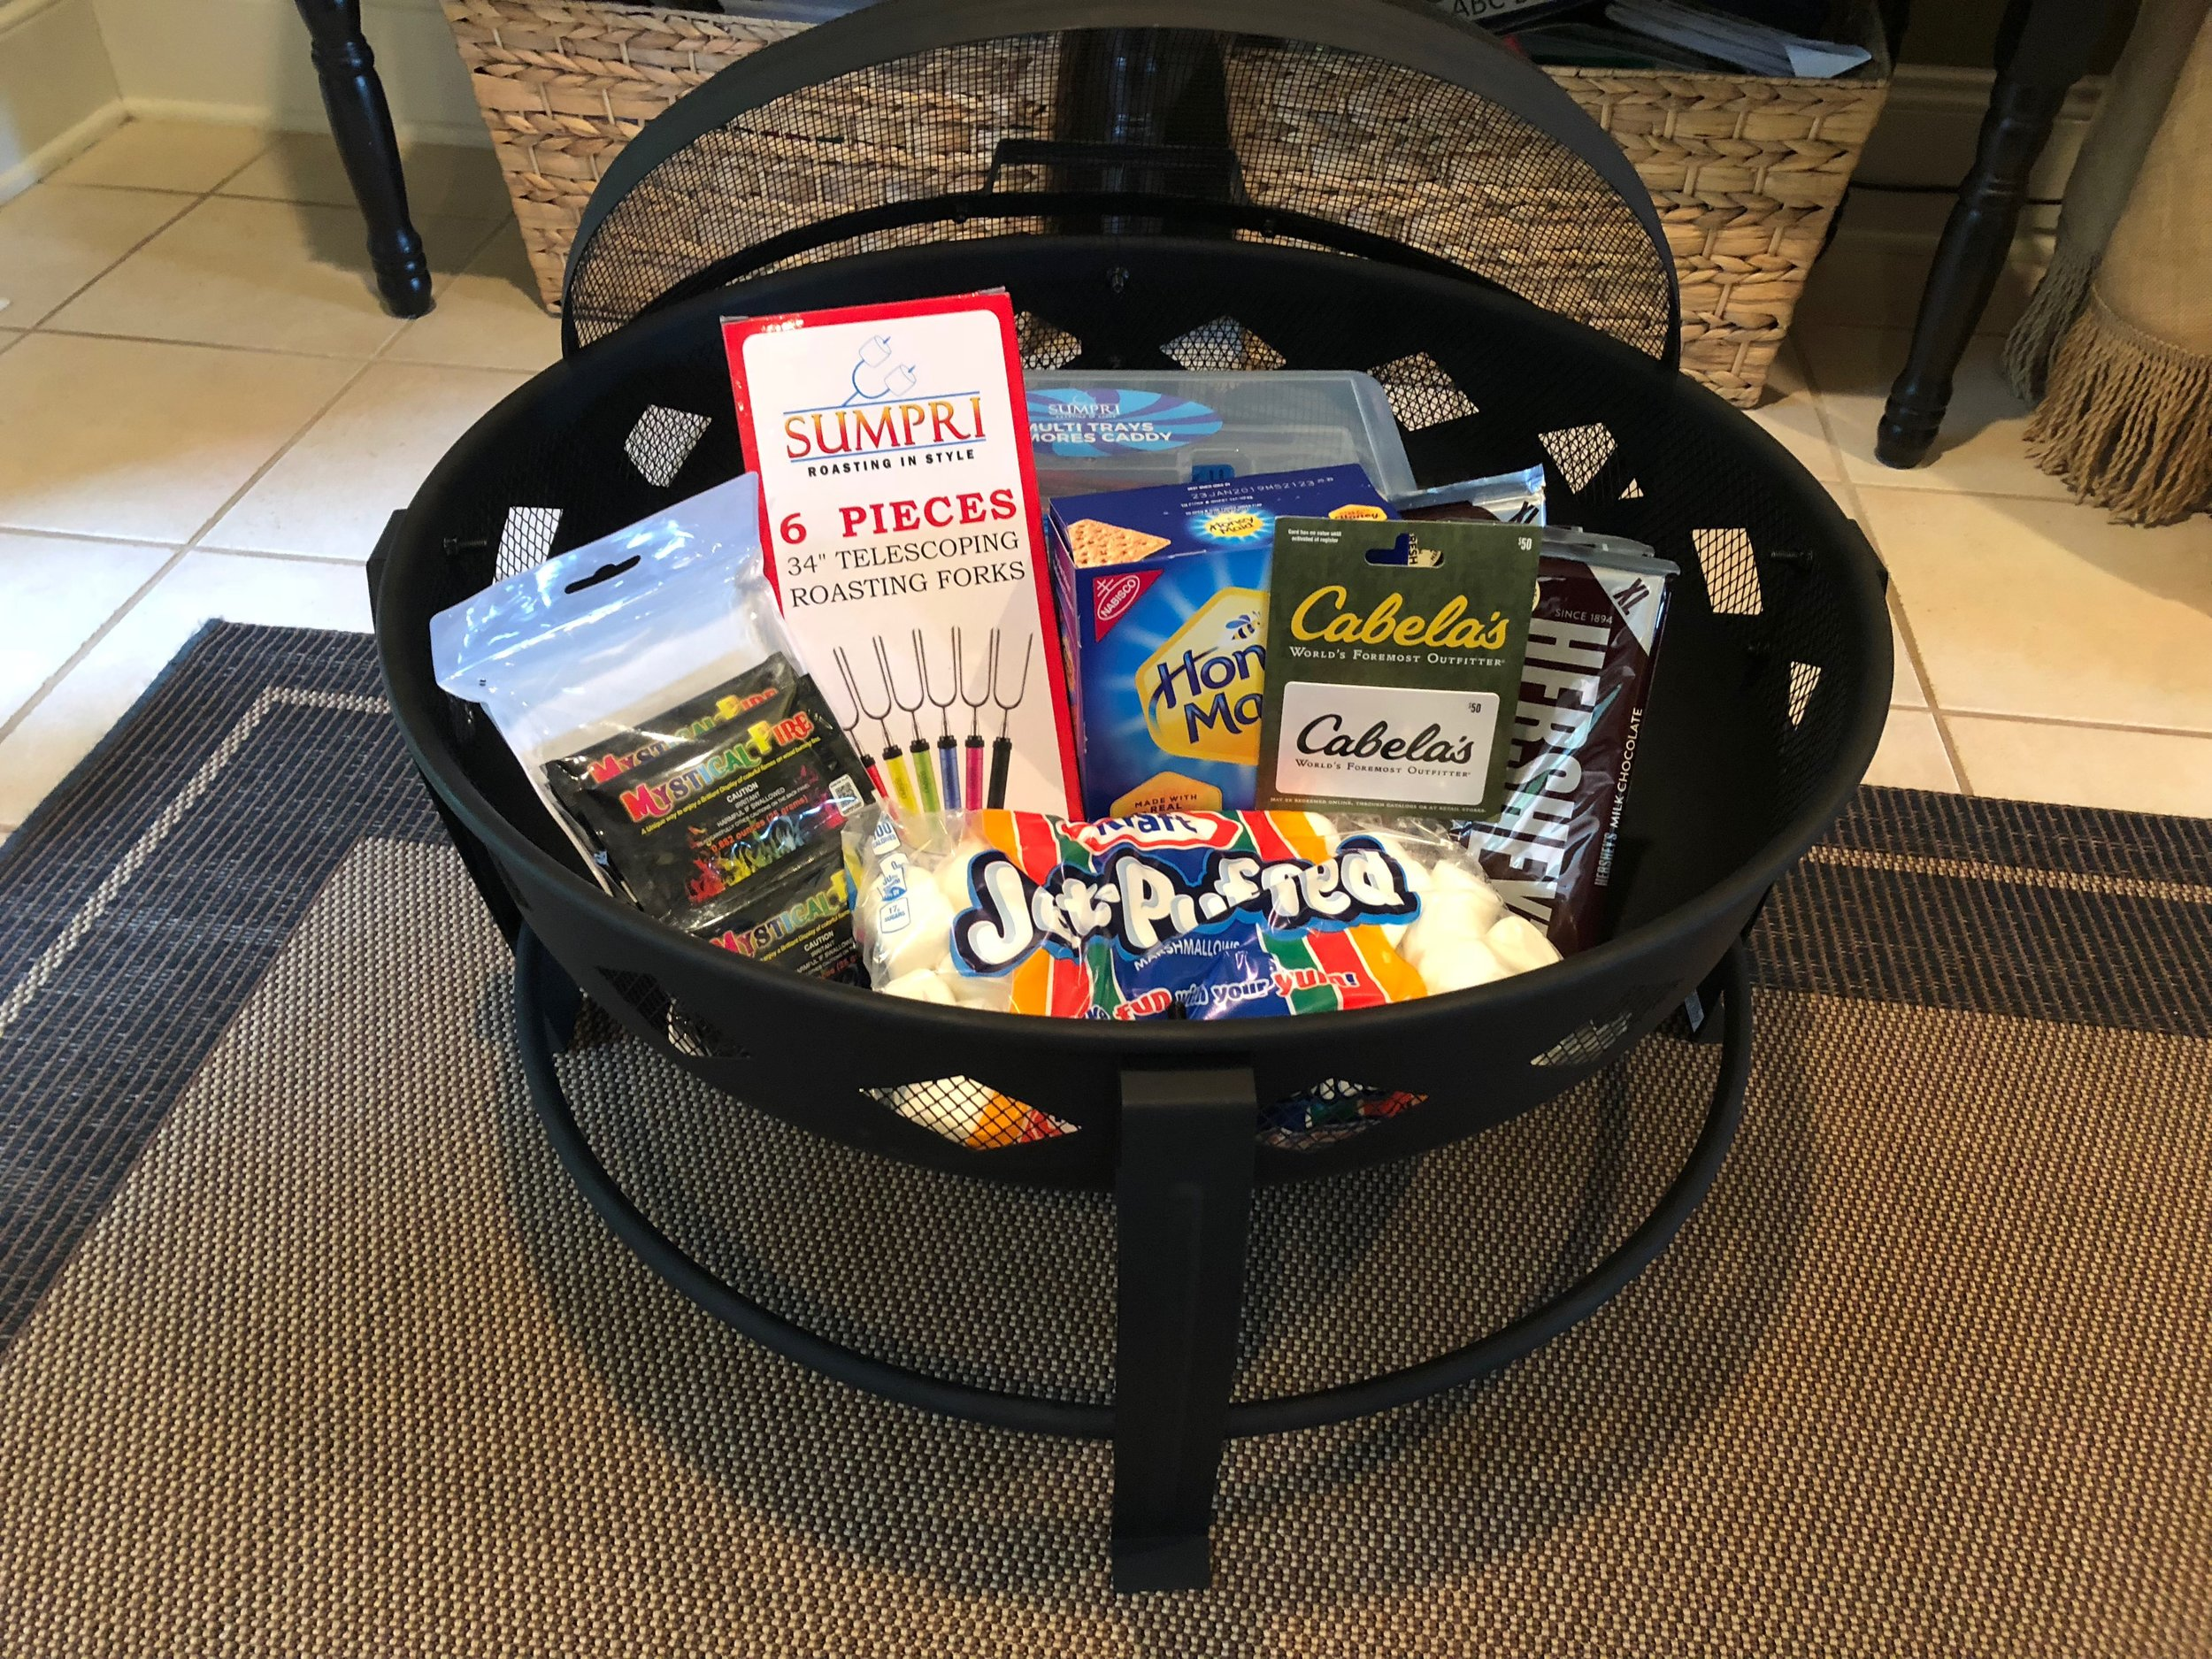 CAMPFIRE BASKET   Roast s'mores in style with this Landmann Firepit full of goodies! Included are $50 Cabela's gift card, S'mores Caddy, S'mores ingredients--Hershey bars, bag of marshmallows, box of graham crackers, 6 piece roasting forks and 12-pack Mystical Fire.  DONOR: 2nd Grade Classes VALUE: $160